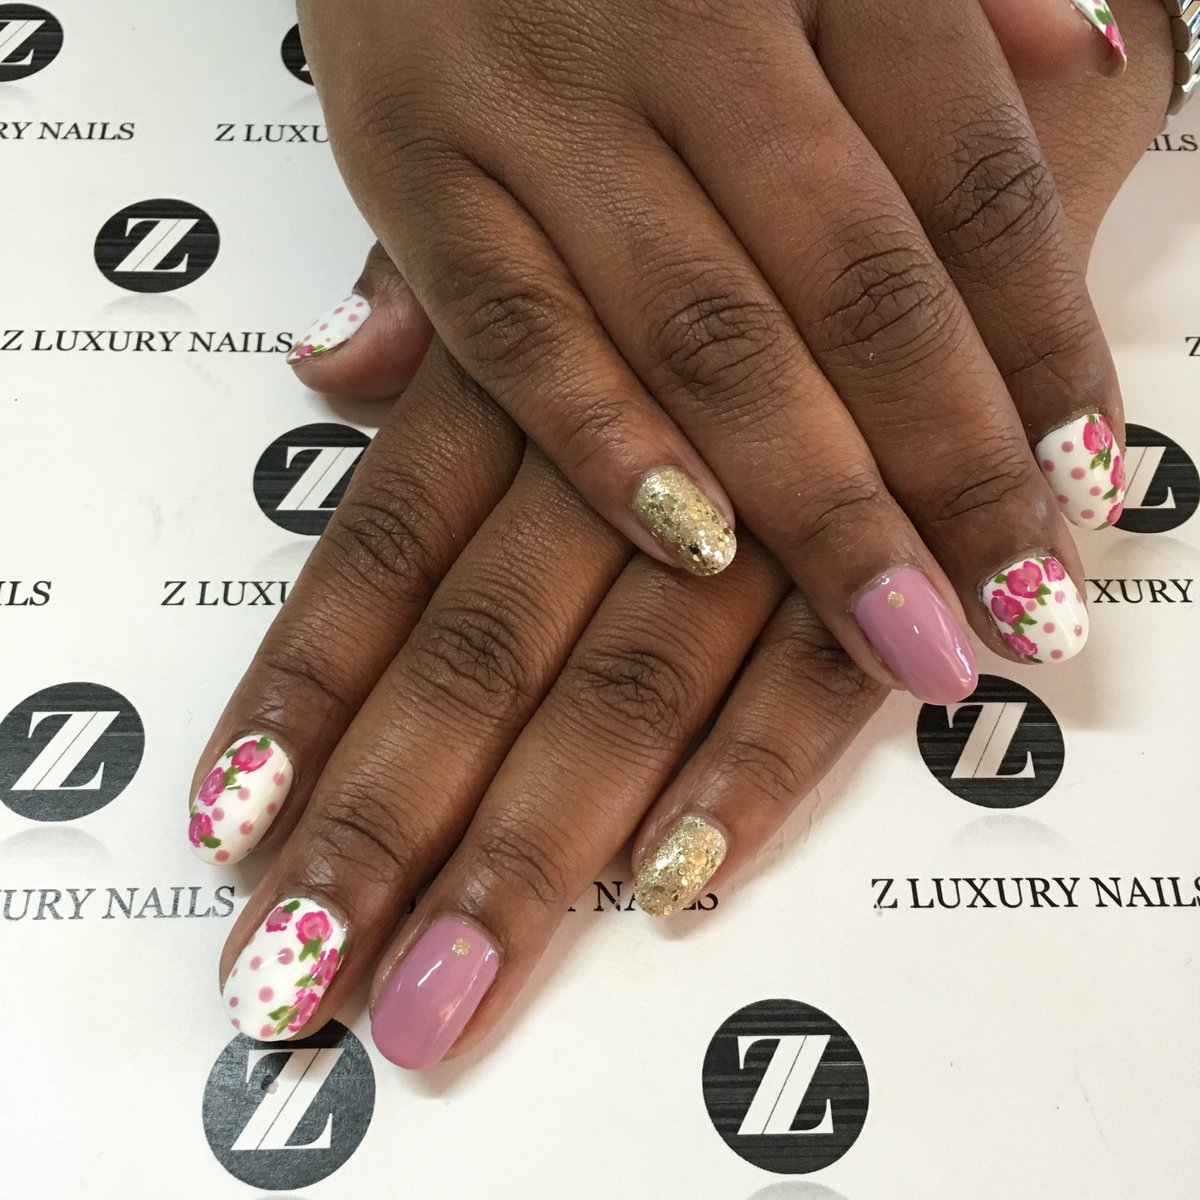 Z Luxury Nails (@ZLuxuryNails) | Twitter